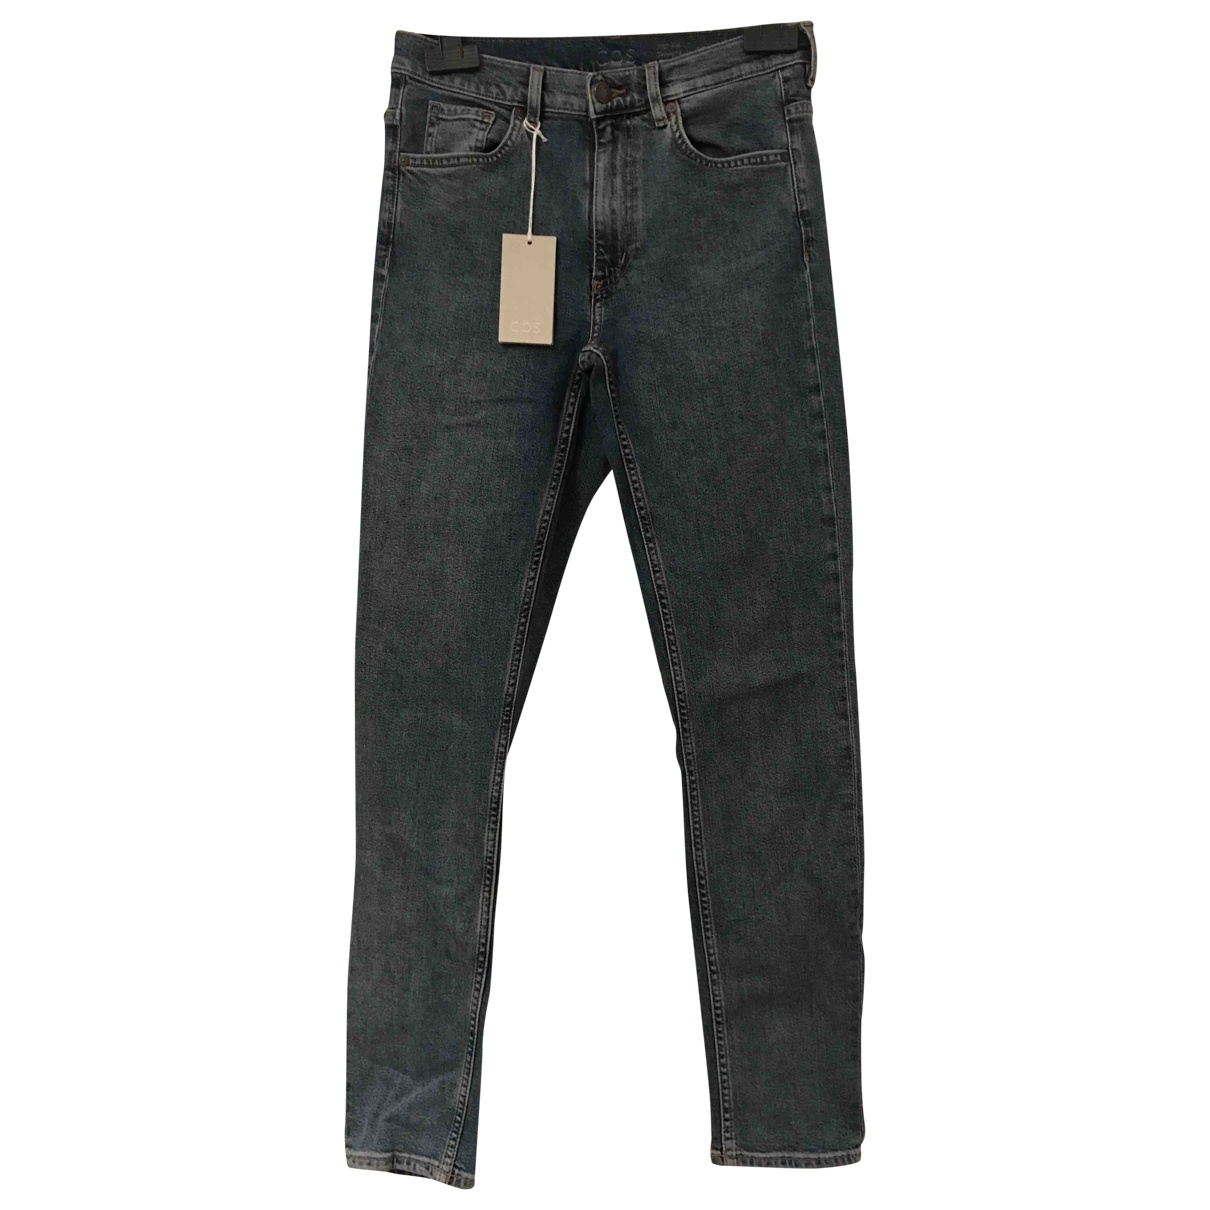 Cos \N Blue Denim - Jeans Jeans for Women 27 US